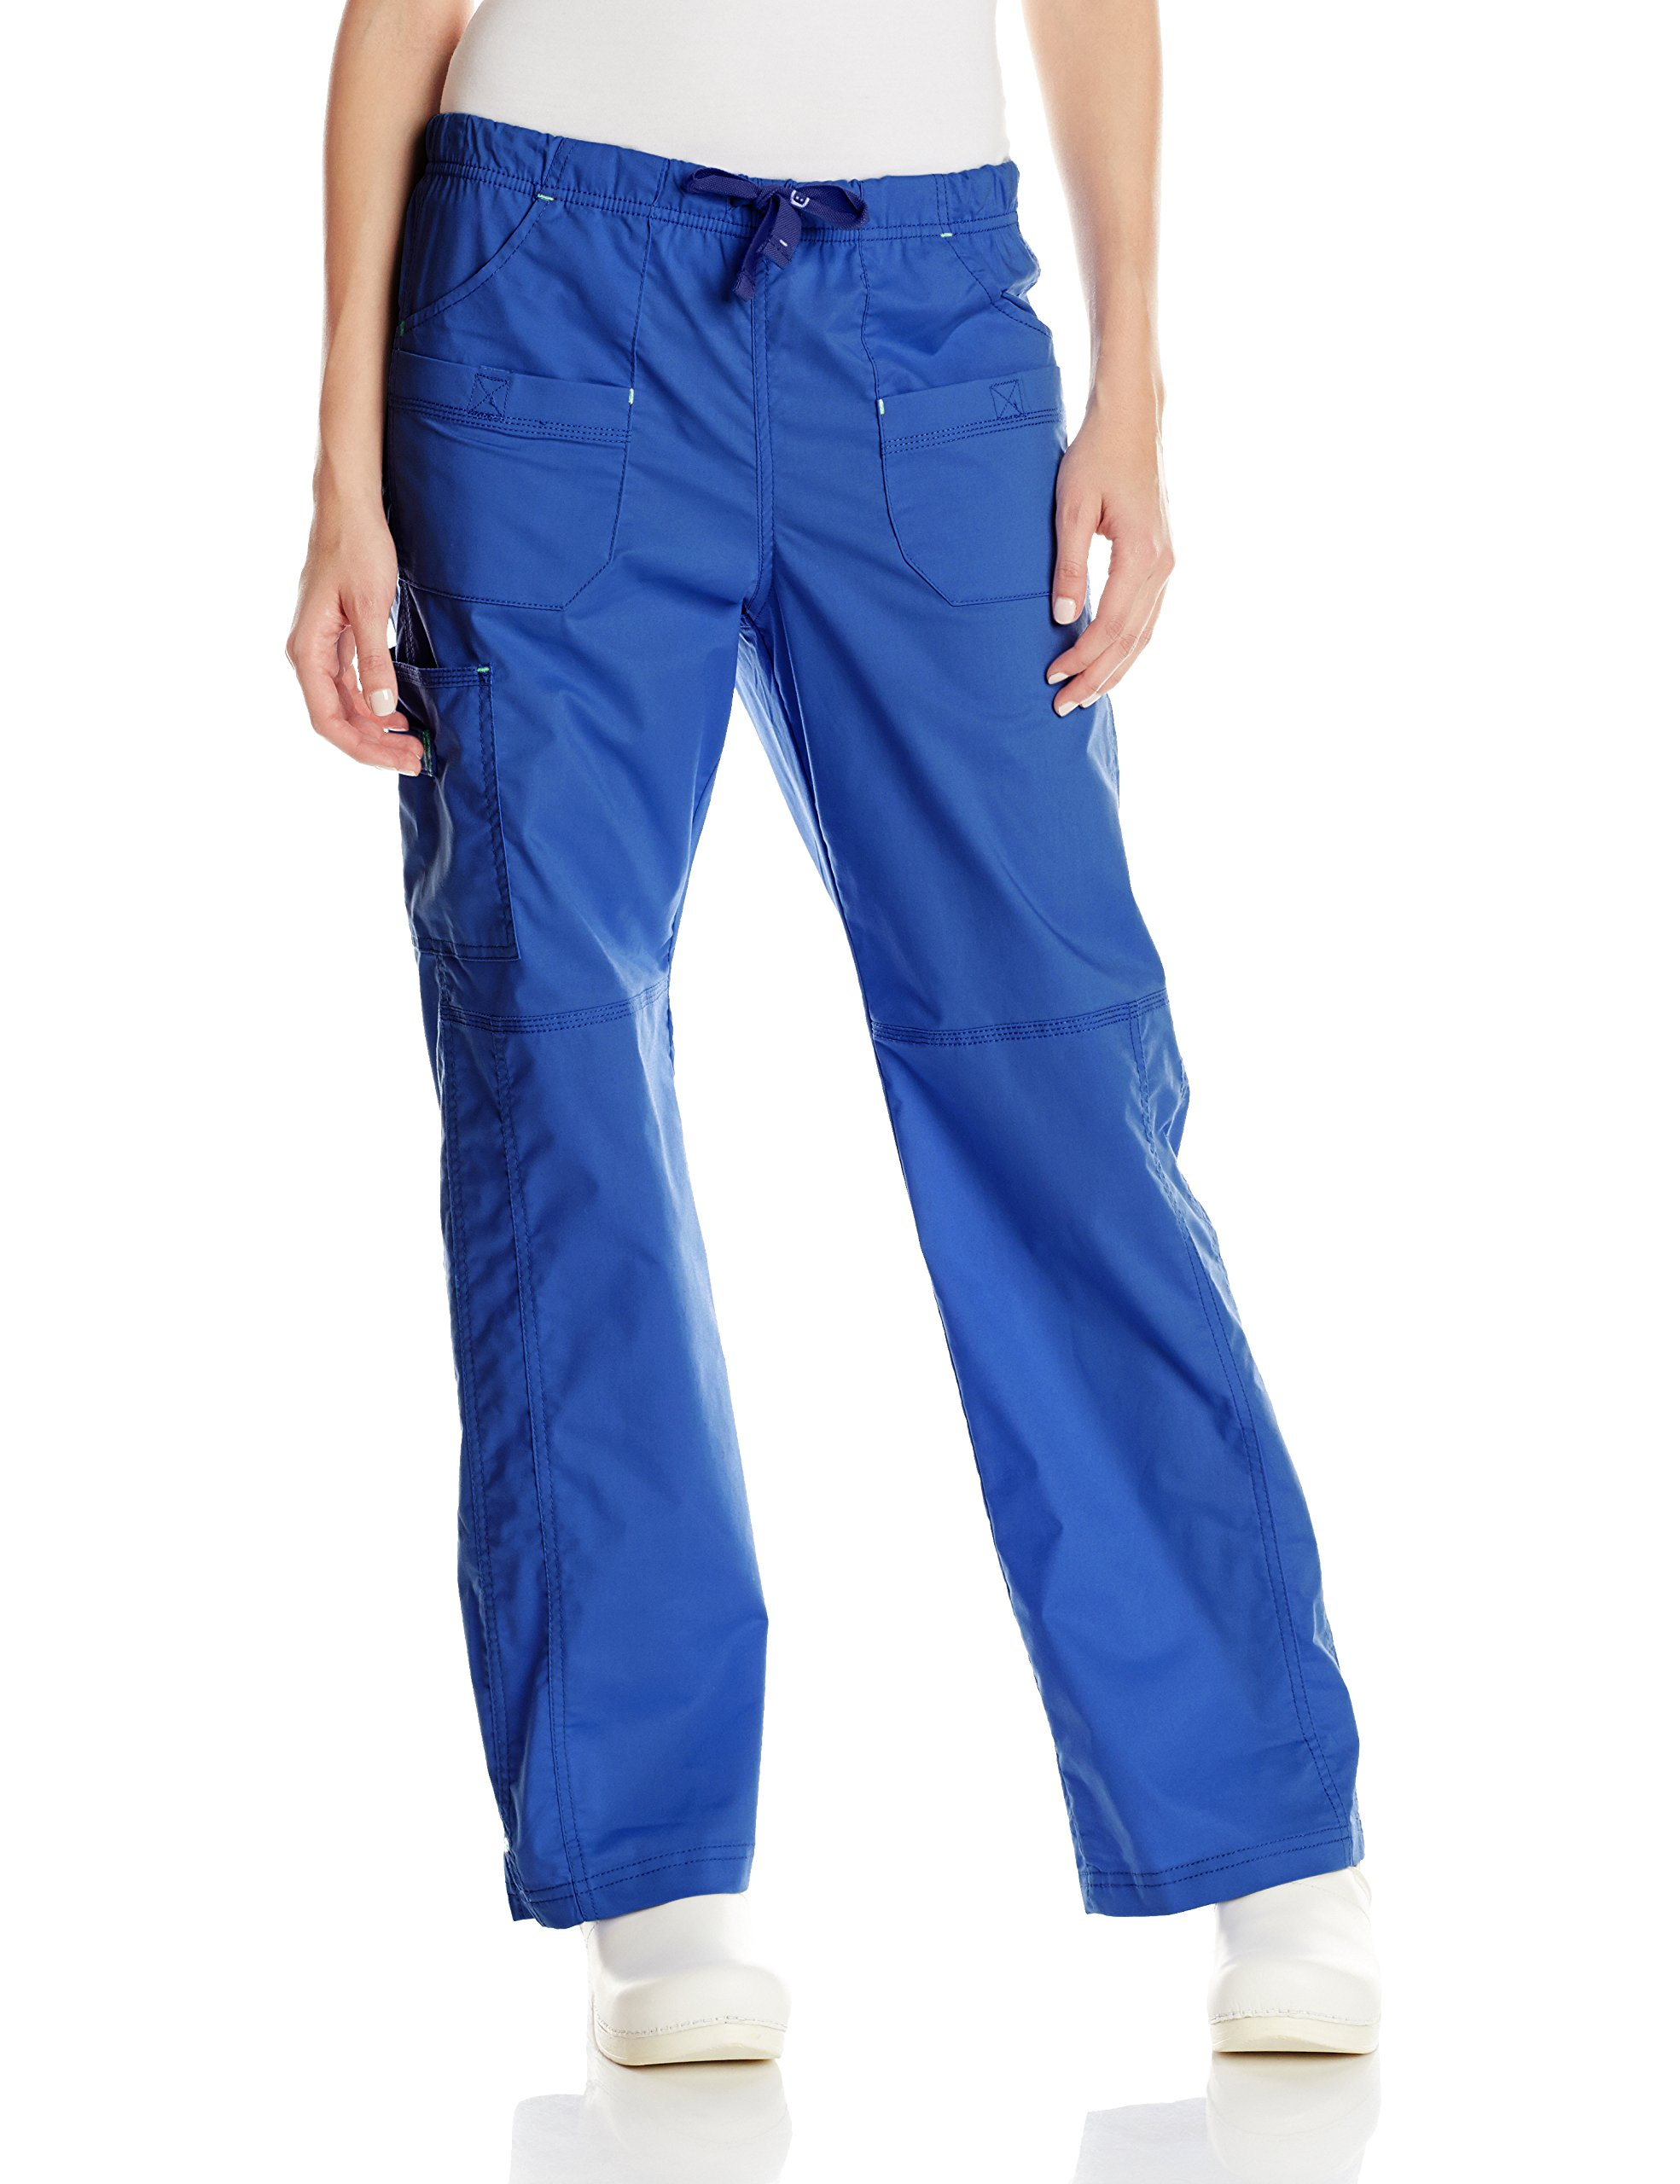 WonderWink Women's Wonderflex Faith Scrub Pant, Royal, 3X-Large Tall